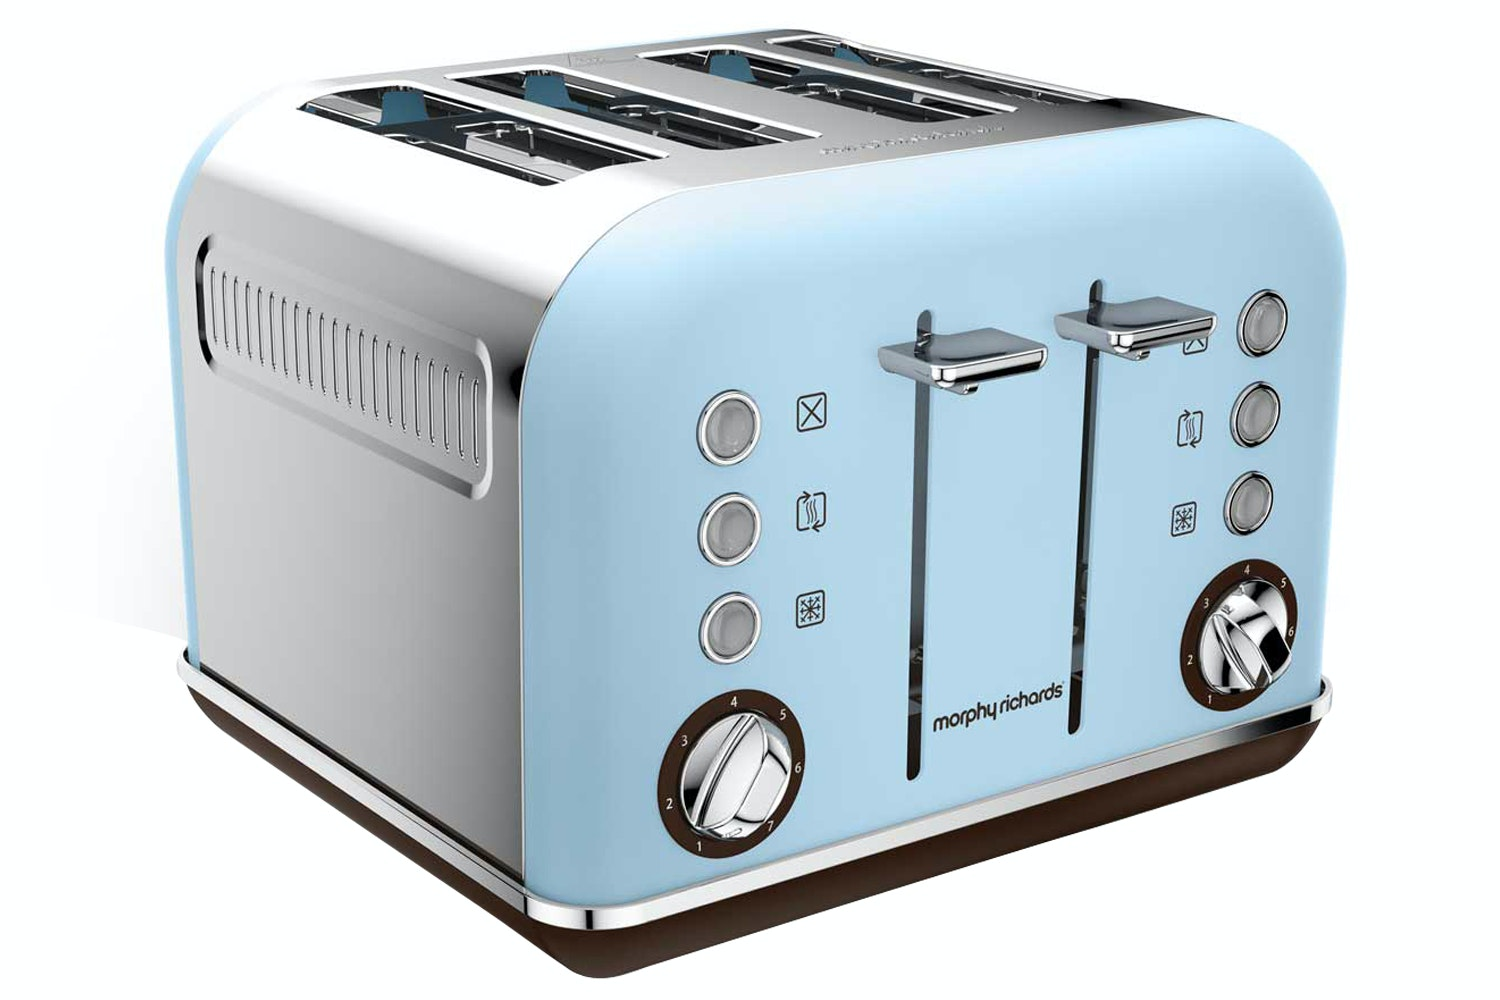 Morphy Richards Special Edition Accents 4 Slice Toaster